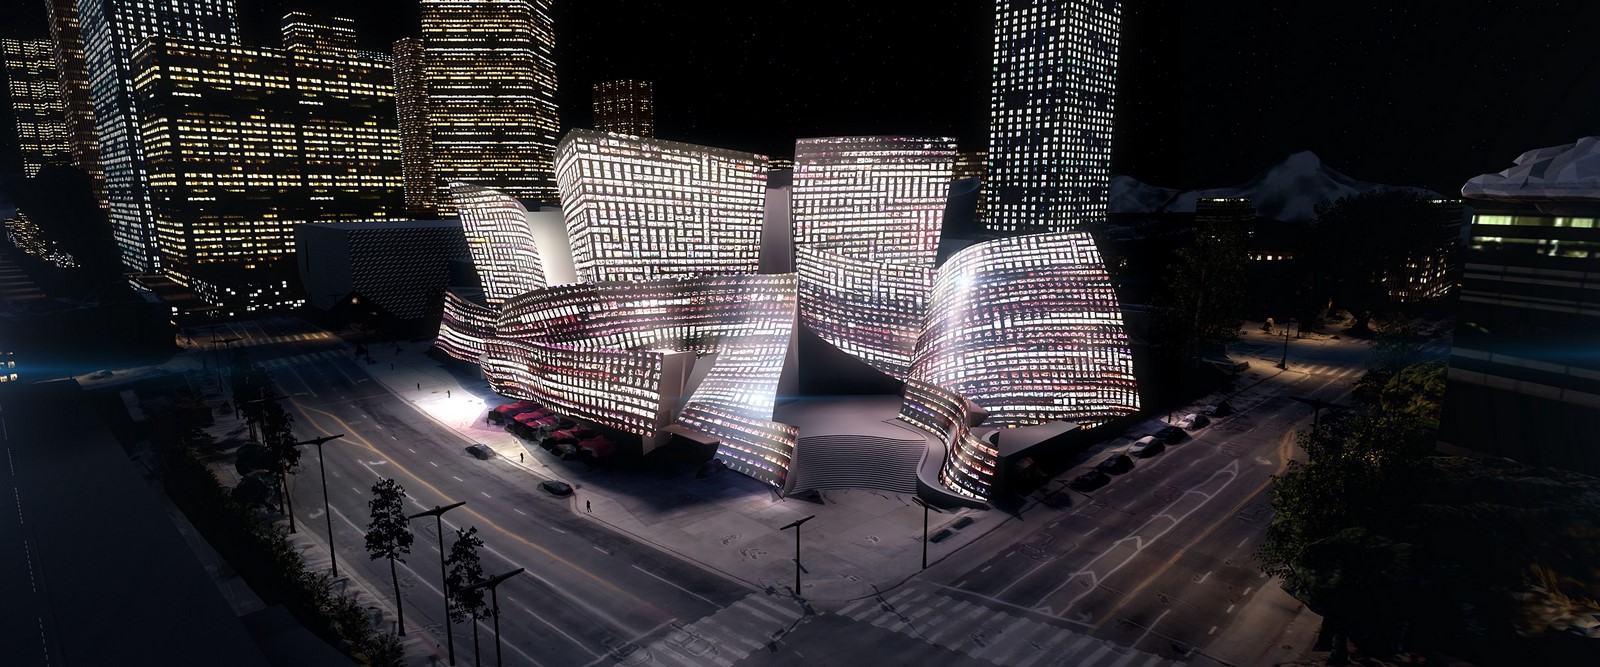 TedTalks for Architects: Art in the age of machine intelligence by Refik Anadol - Sheet7